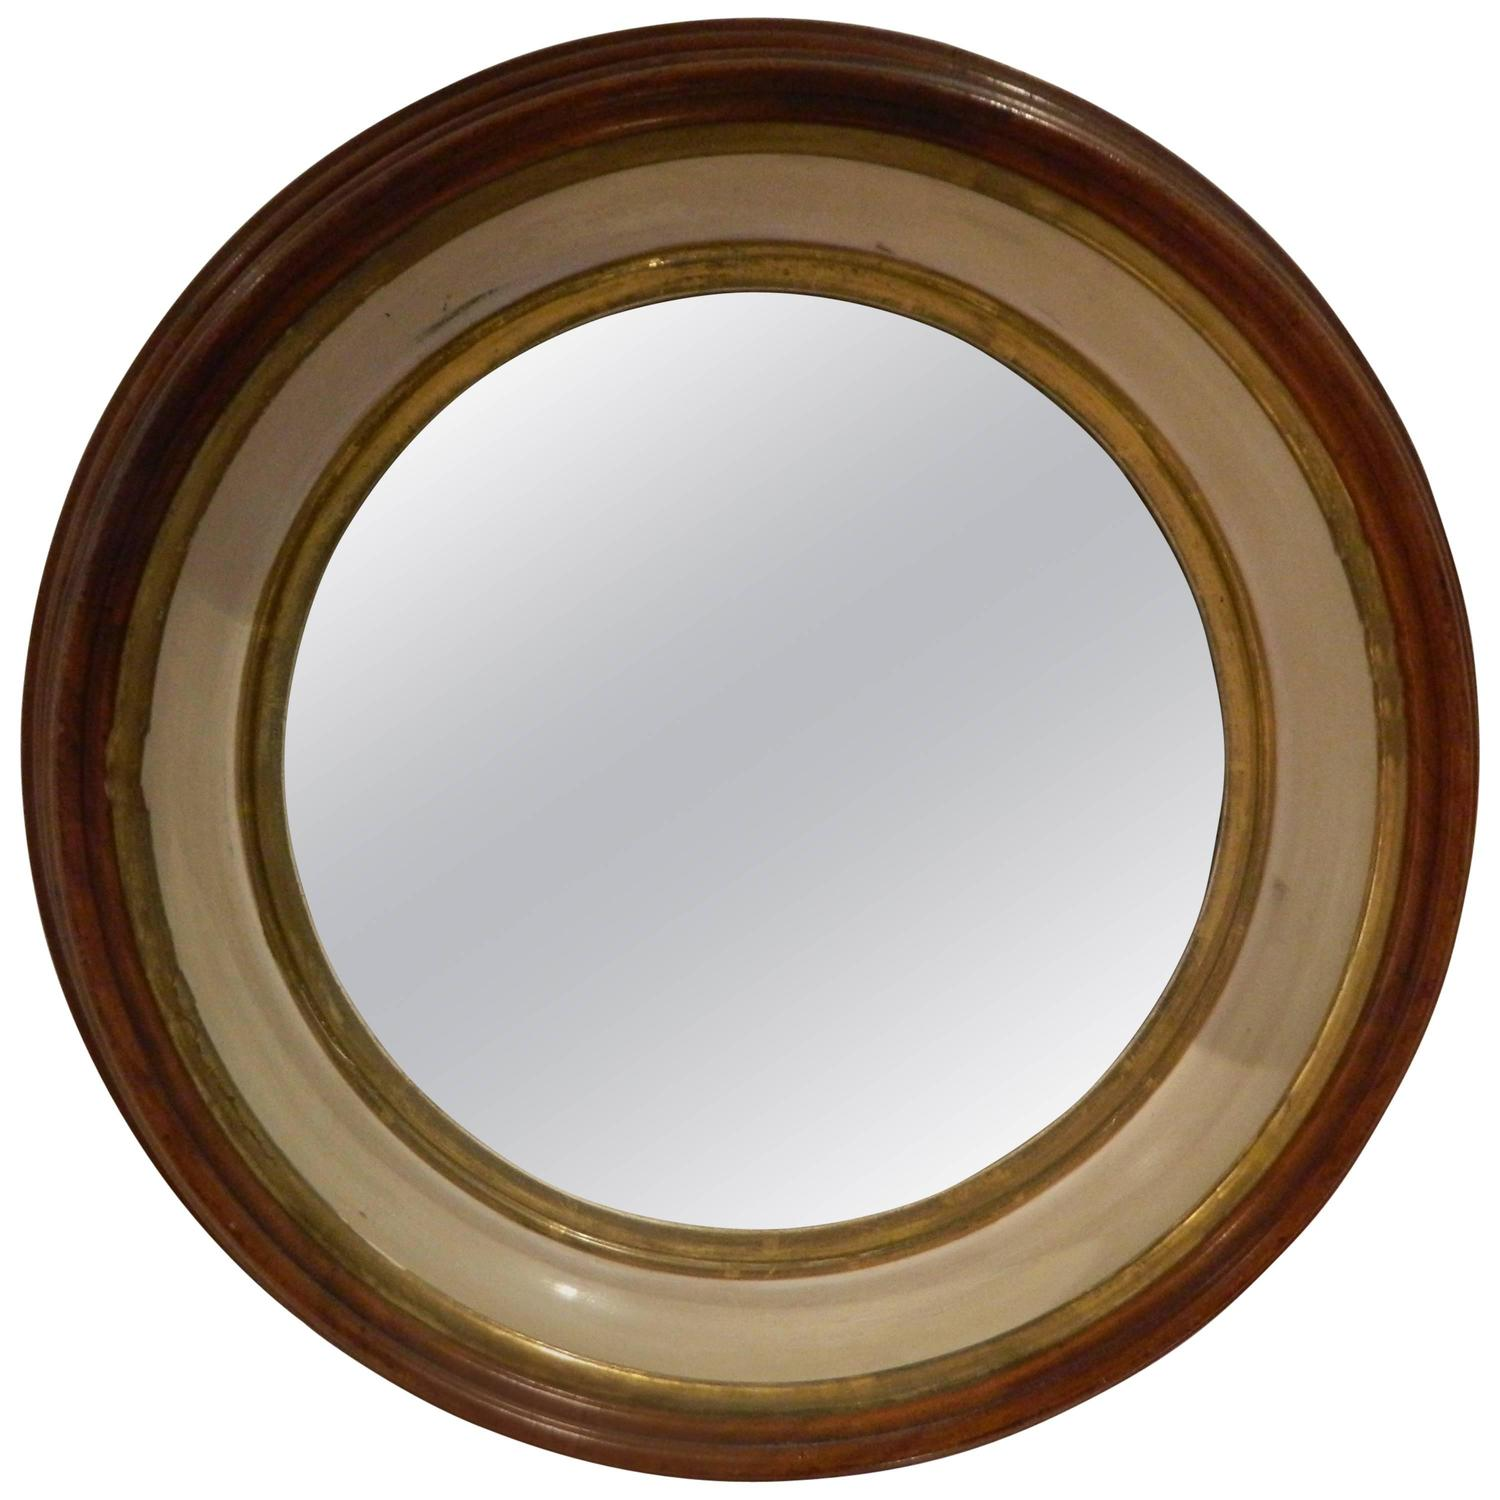 Nautical Style Wood Round Mirror Late 19th Early 20th